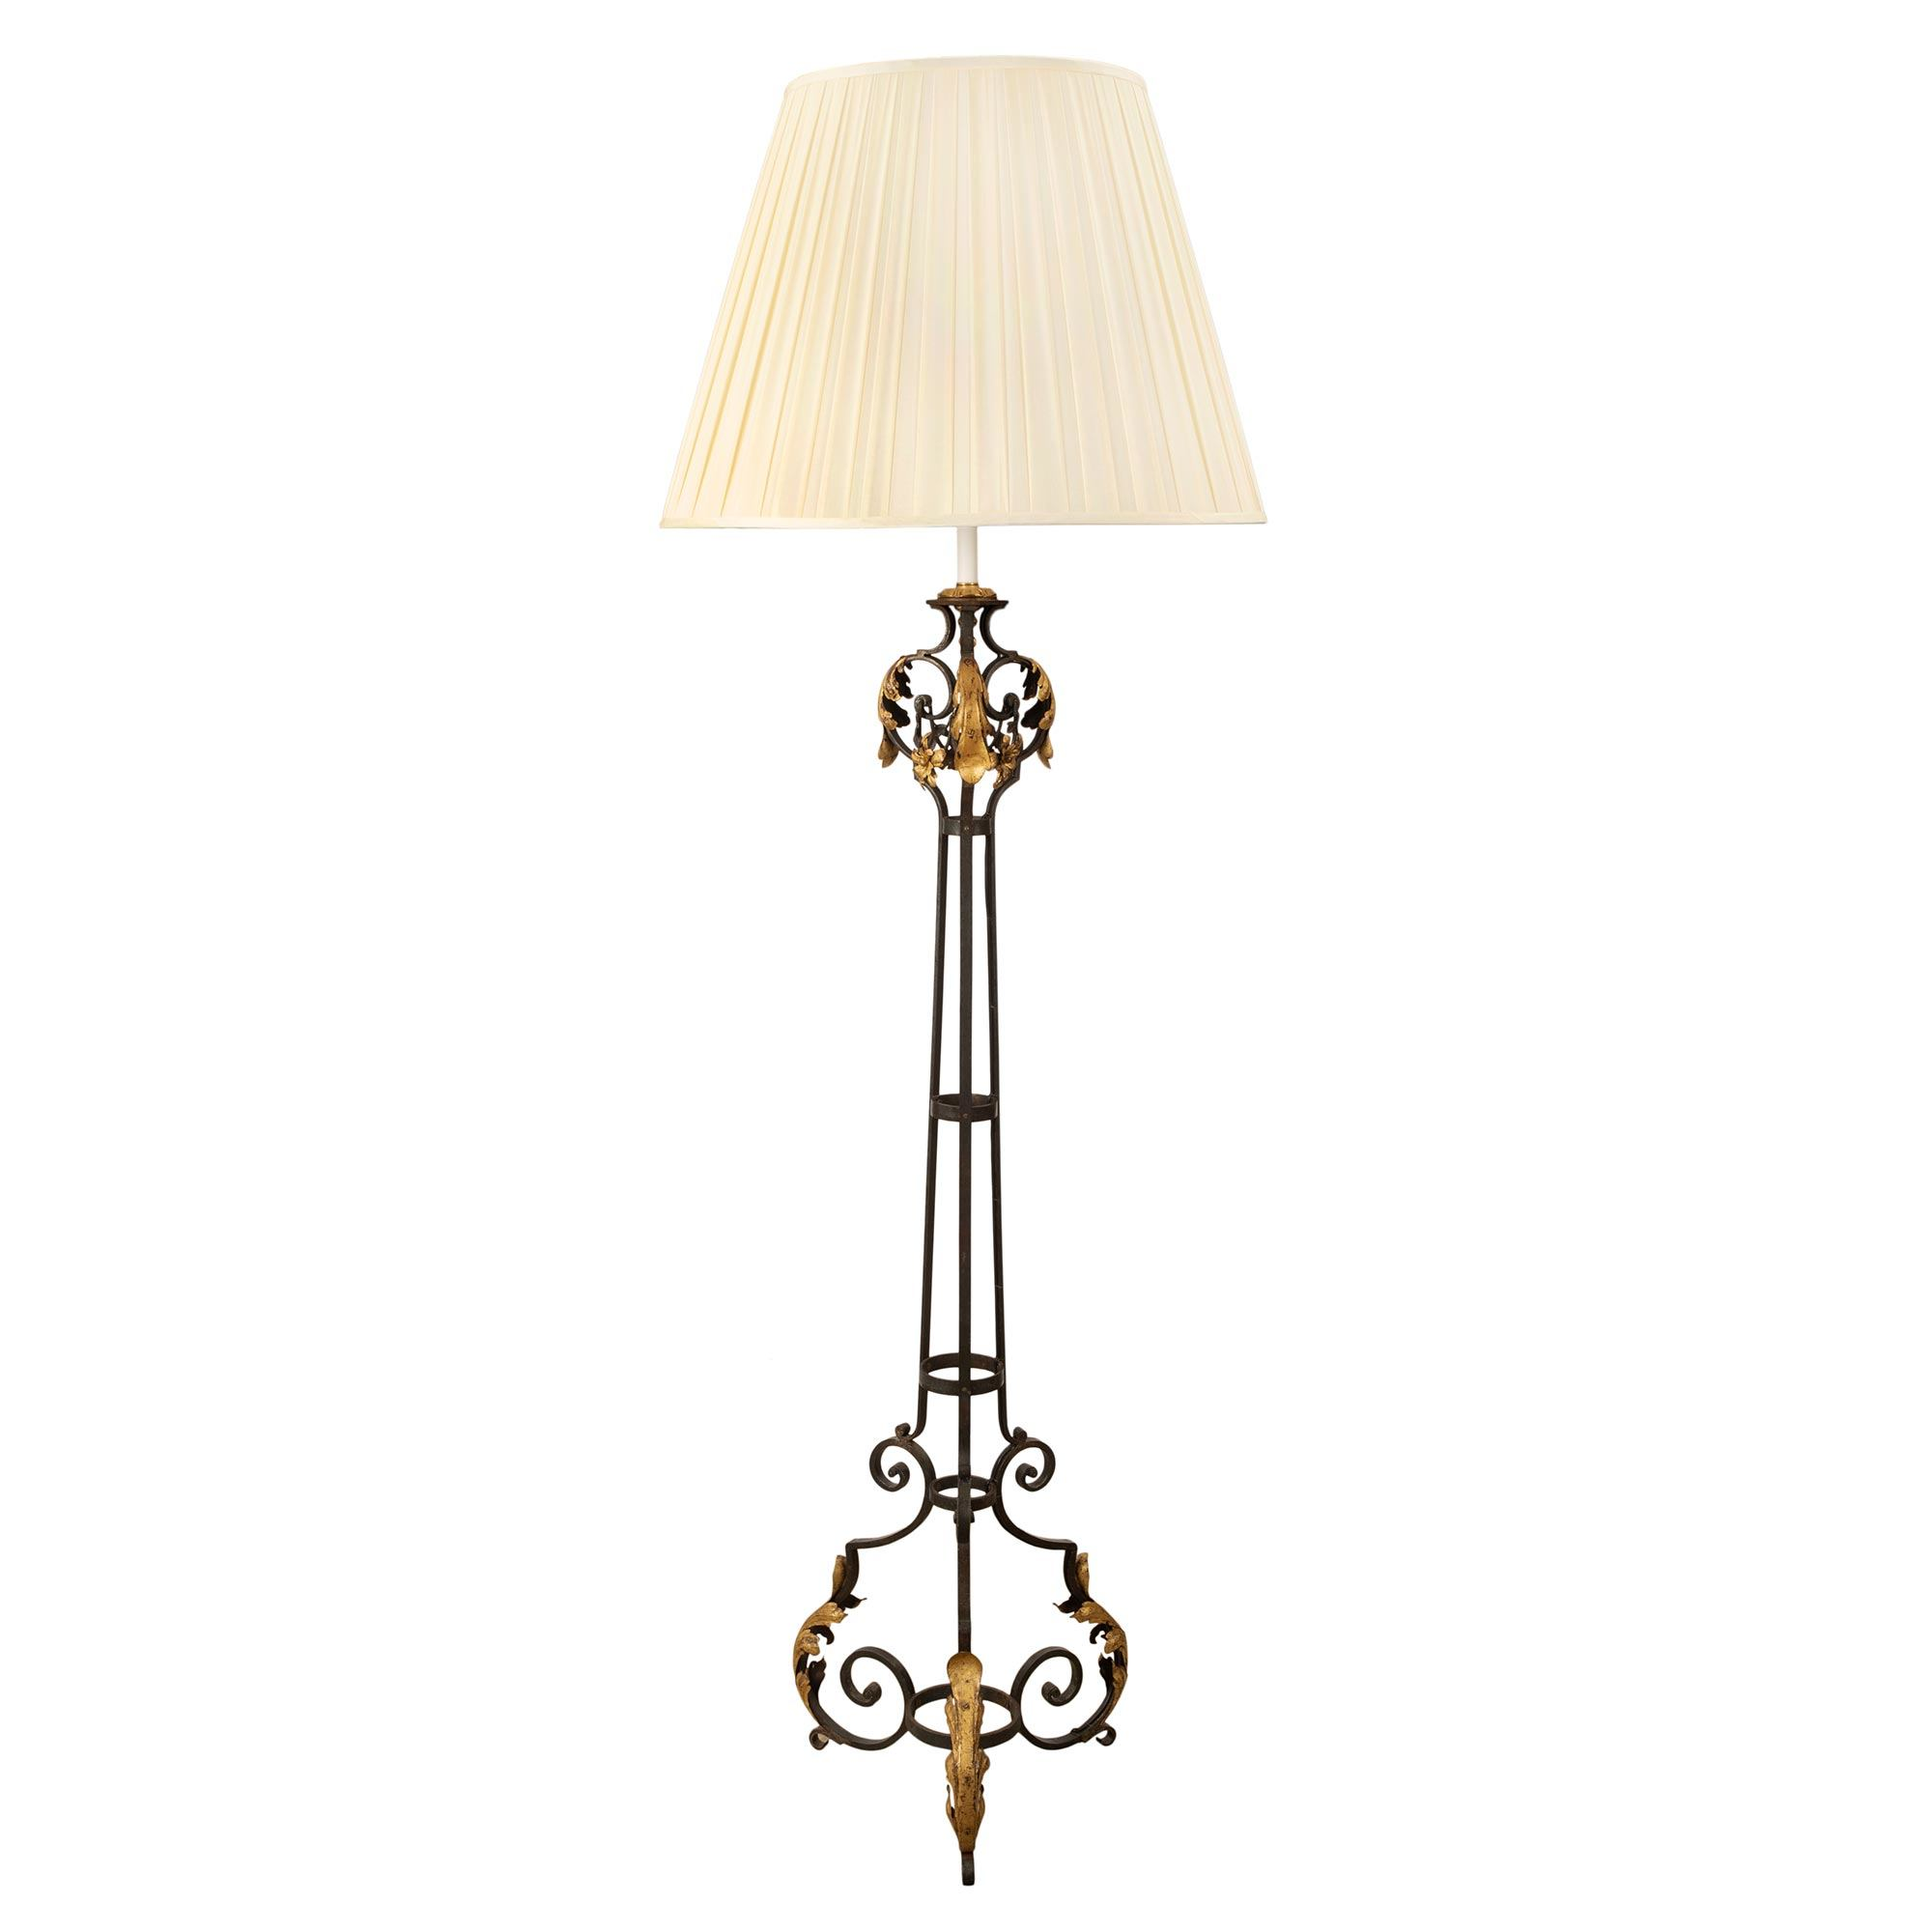 A French 19th Century Wrought Iron And Gilt Metal Floor Lamp Cedric Dupont Antiques